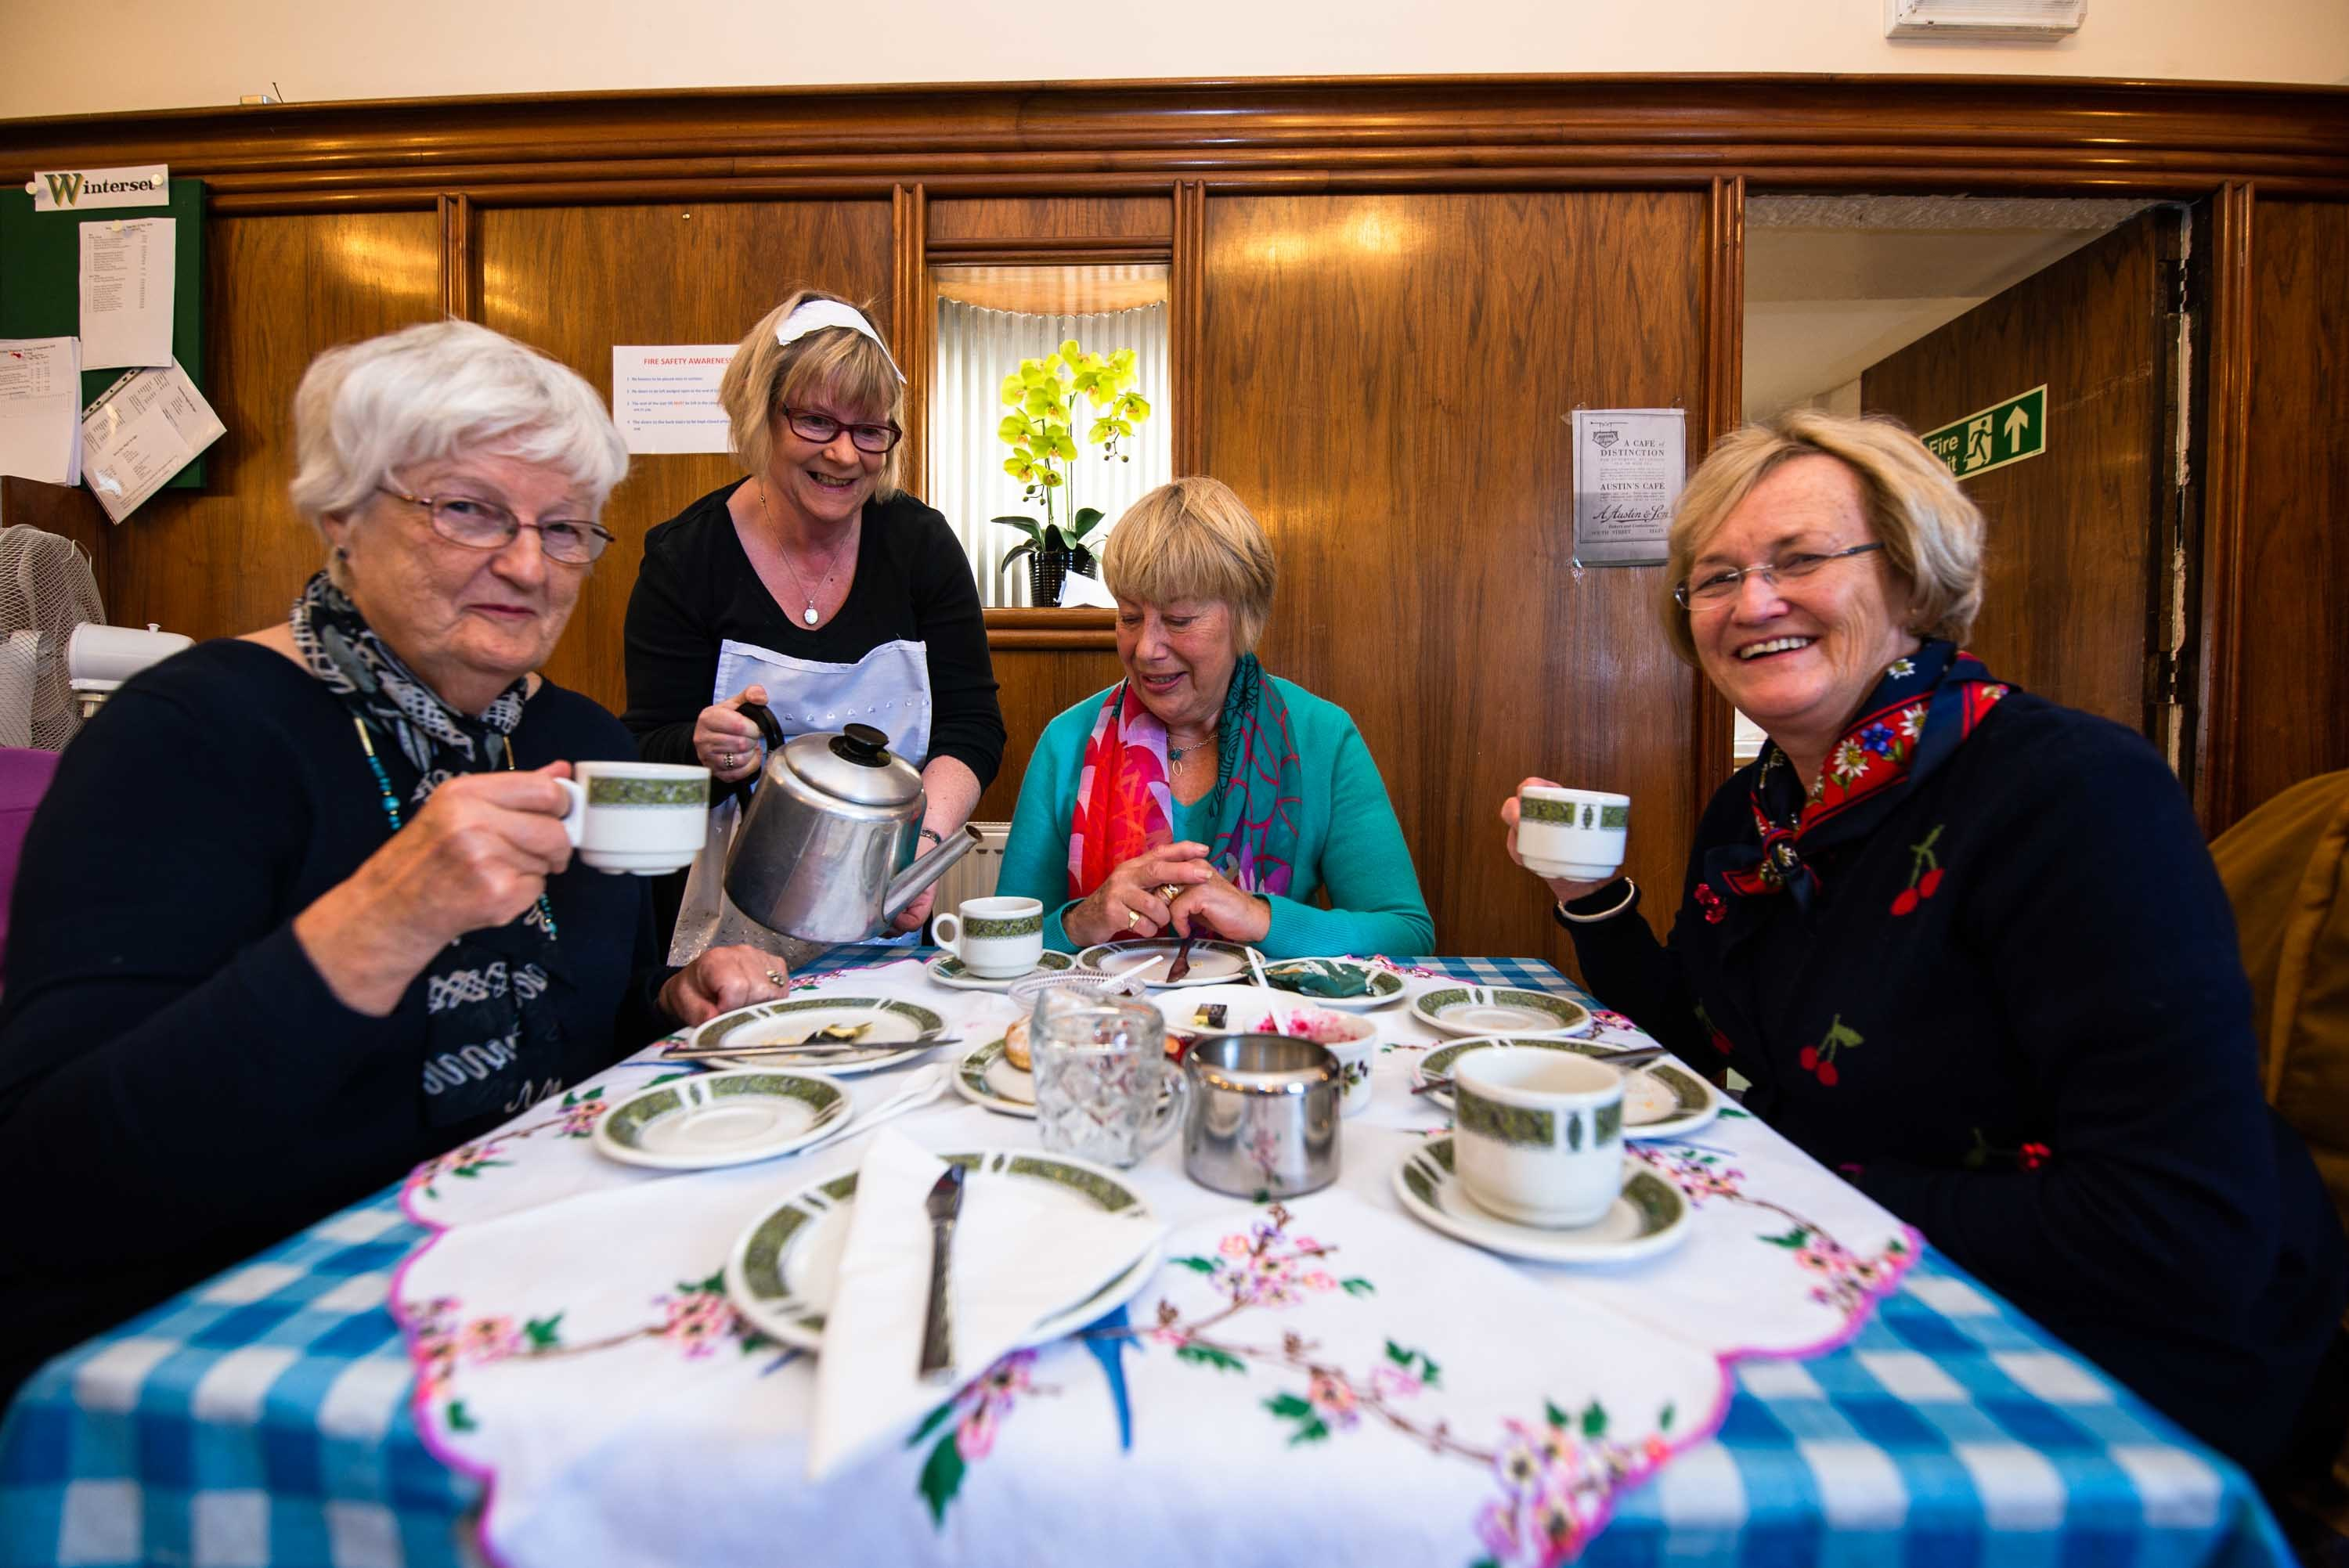 Volunteer Janice Mackenzie waits on the table of Anne Smith, Marjorie Adam and Catherine Fettes at the recreated Austin's Tea Room.